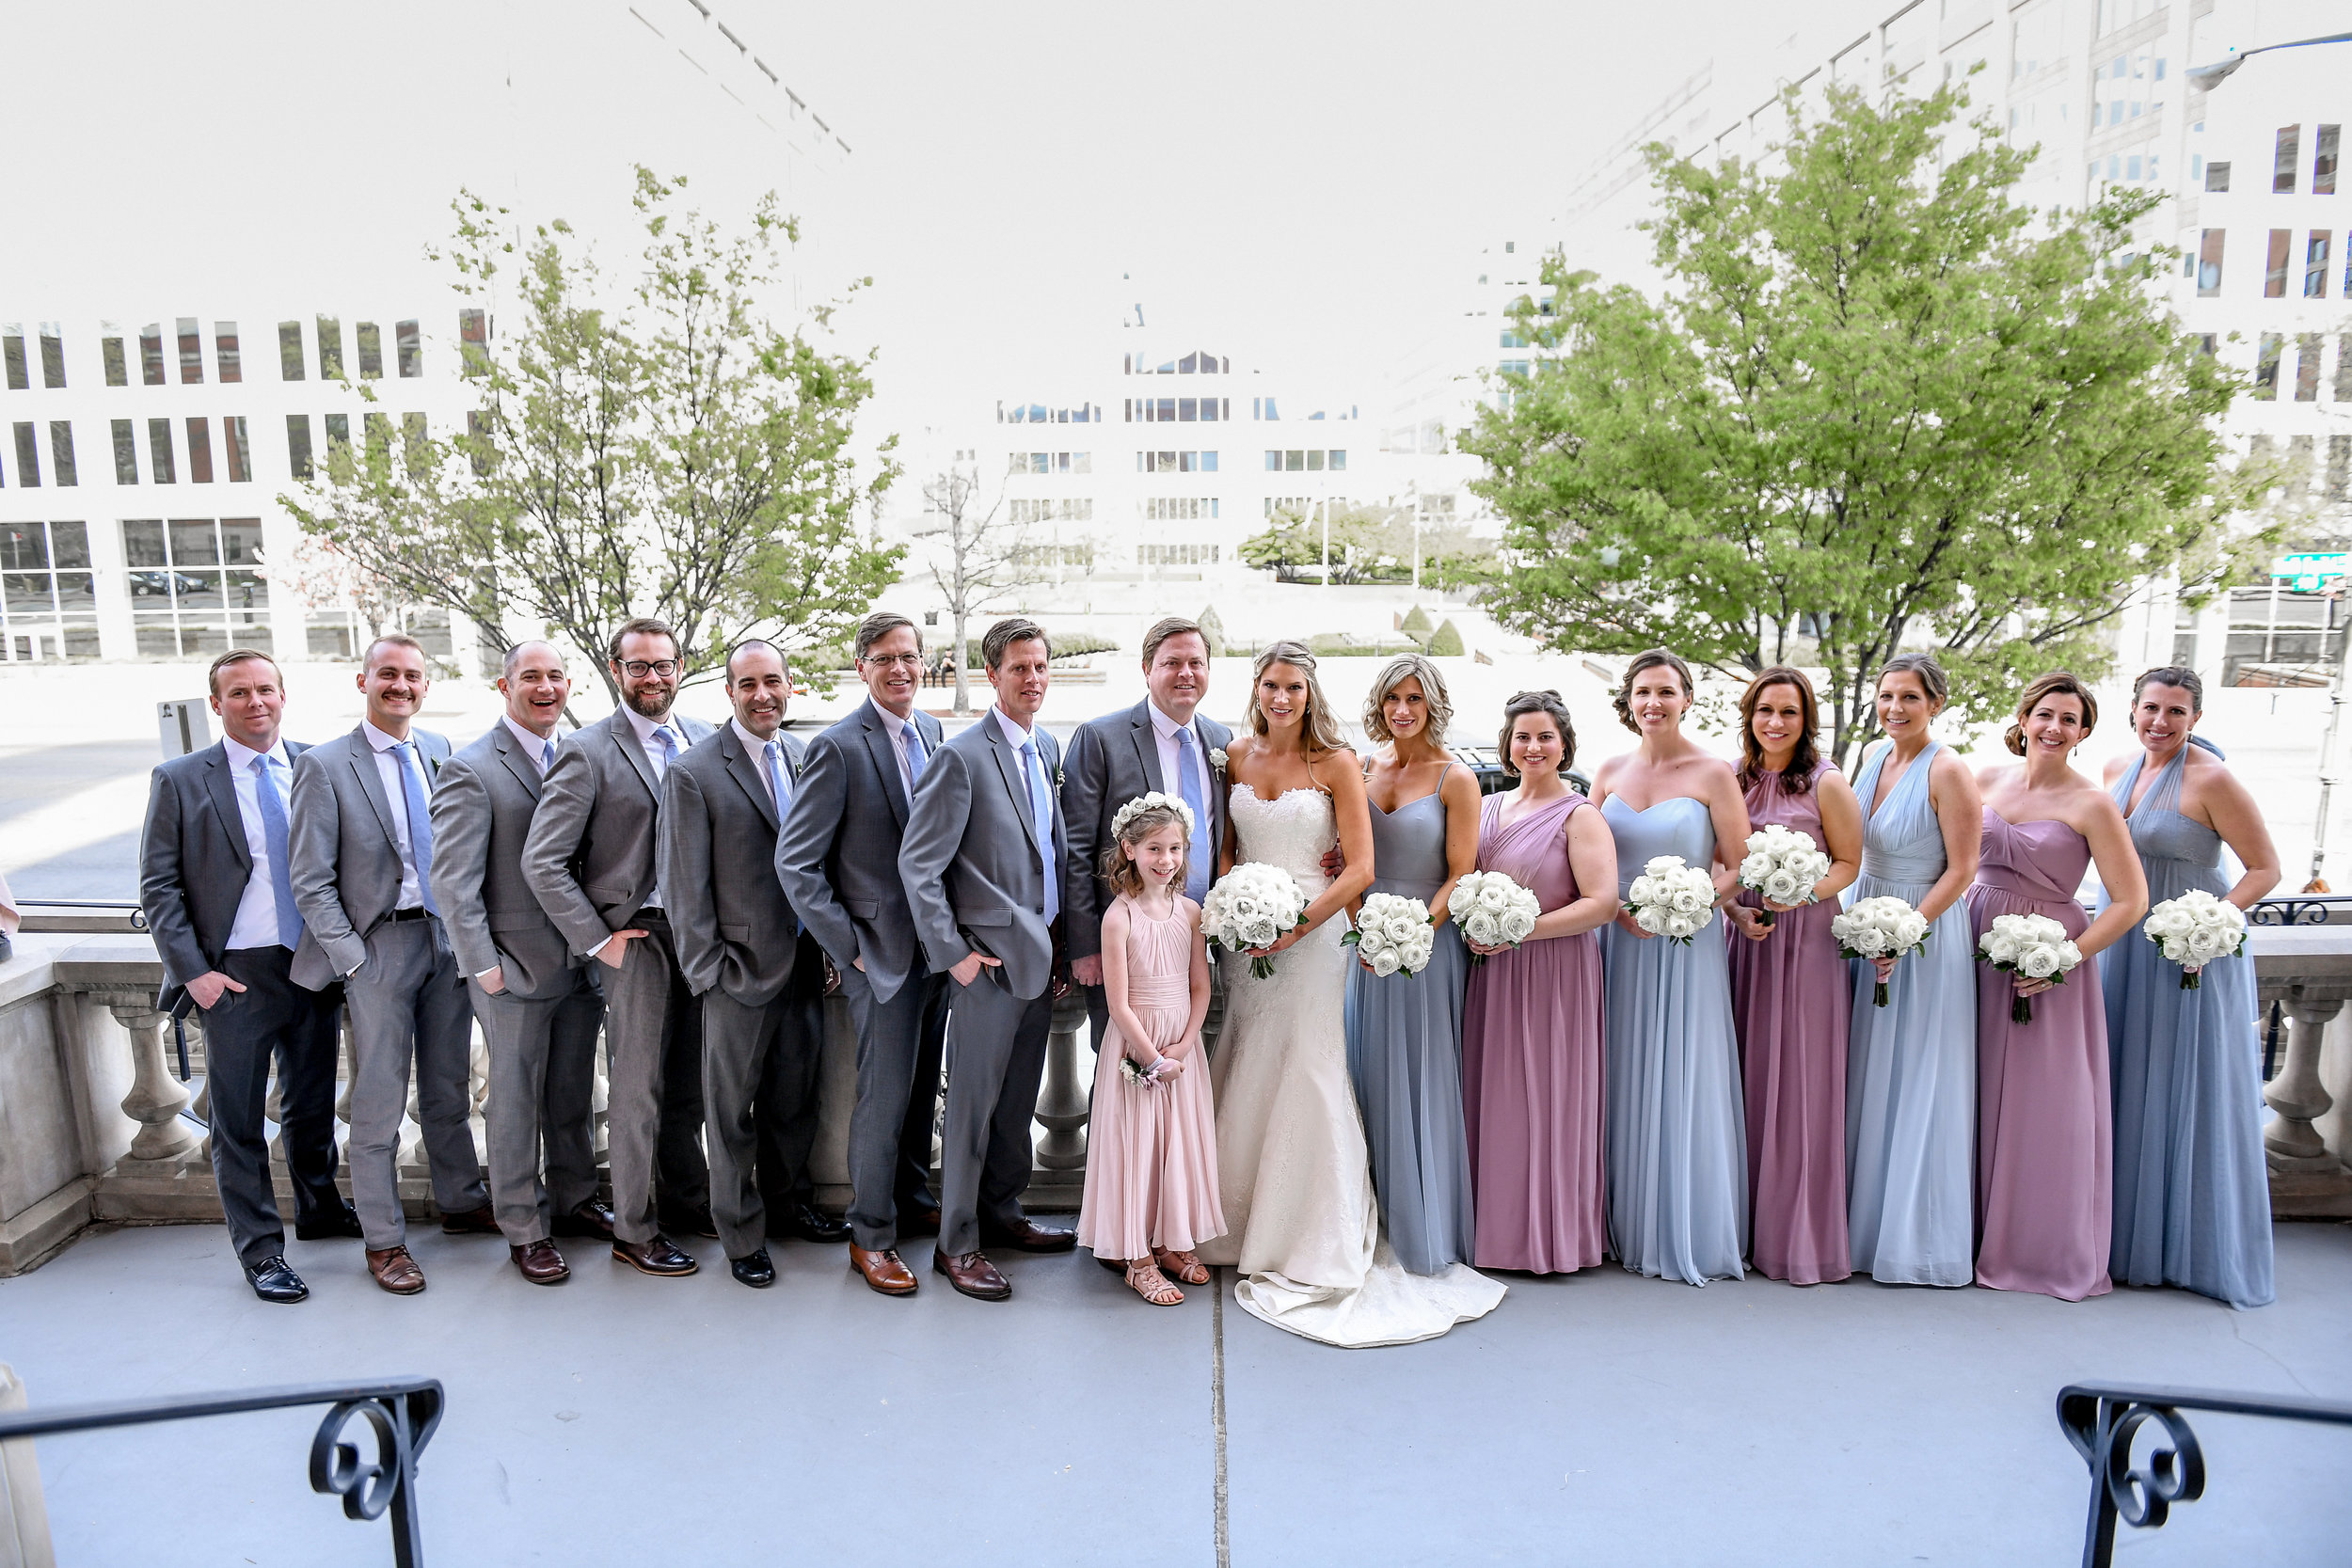 Atelier Ashley Flowers + Erin Tetterton Photography + bridal portrait + bridesmaids bouquetsc + dusty blue + dusty pink